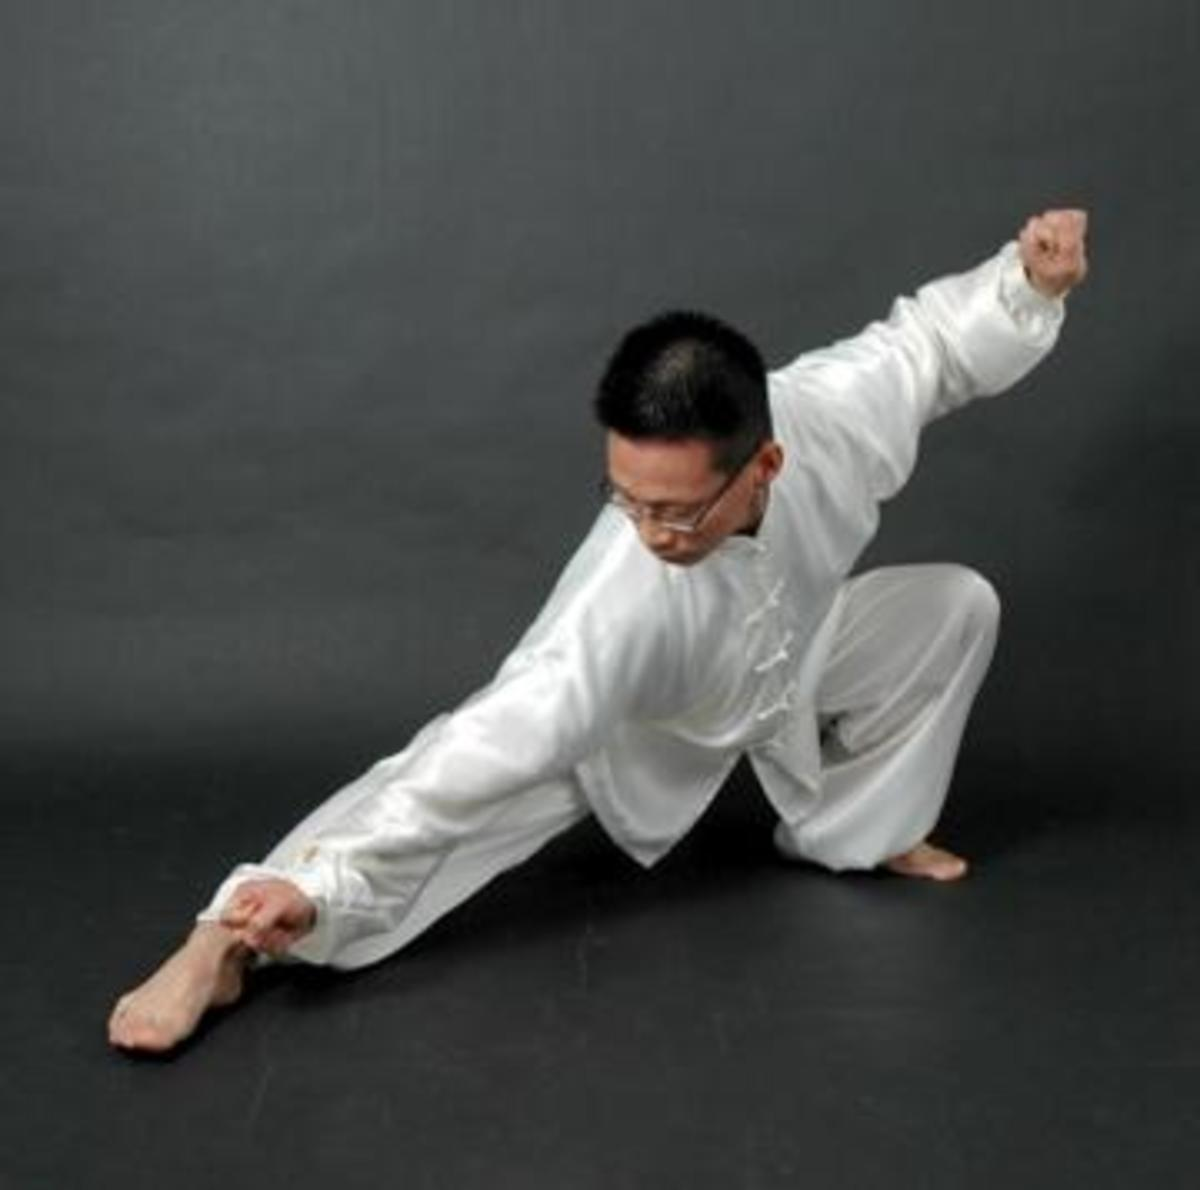 Tai Chi is gentle, precise, makes you flexible, well balanced and strongly centred.